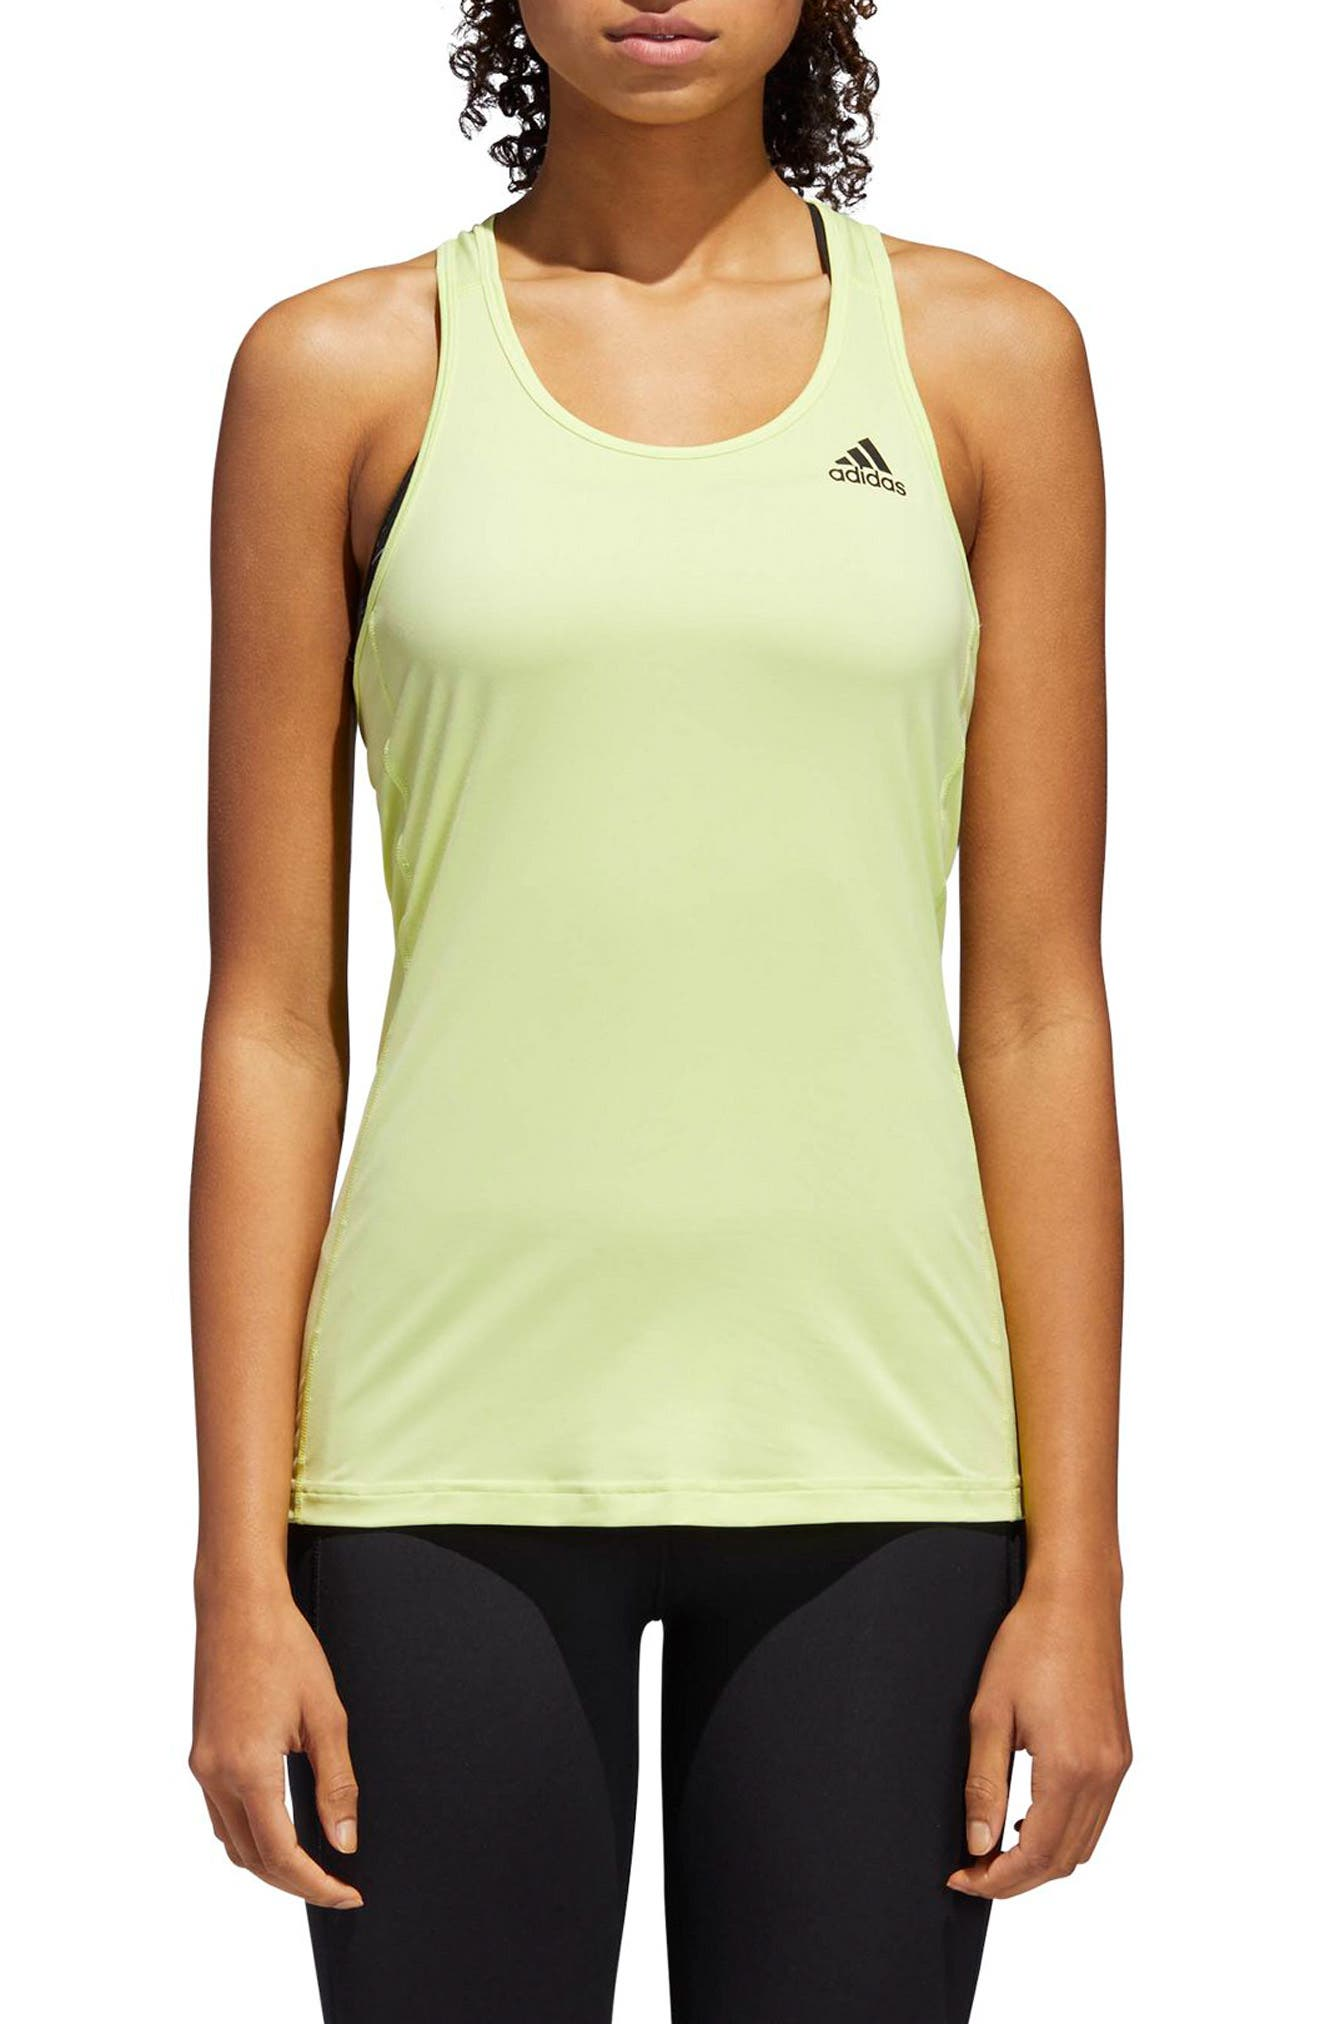 Performer Baseline Tank Top,                         Main,                         color, Semi Frozen Yellow/ Black